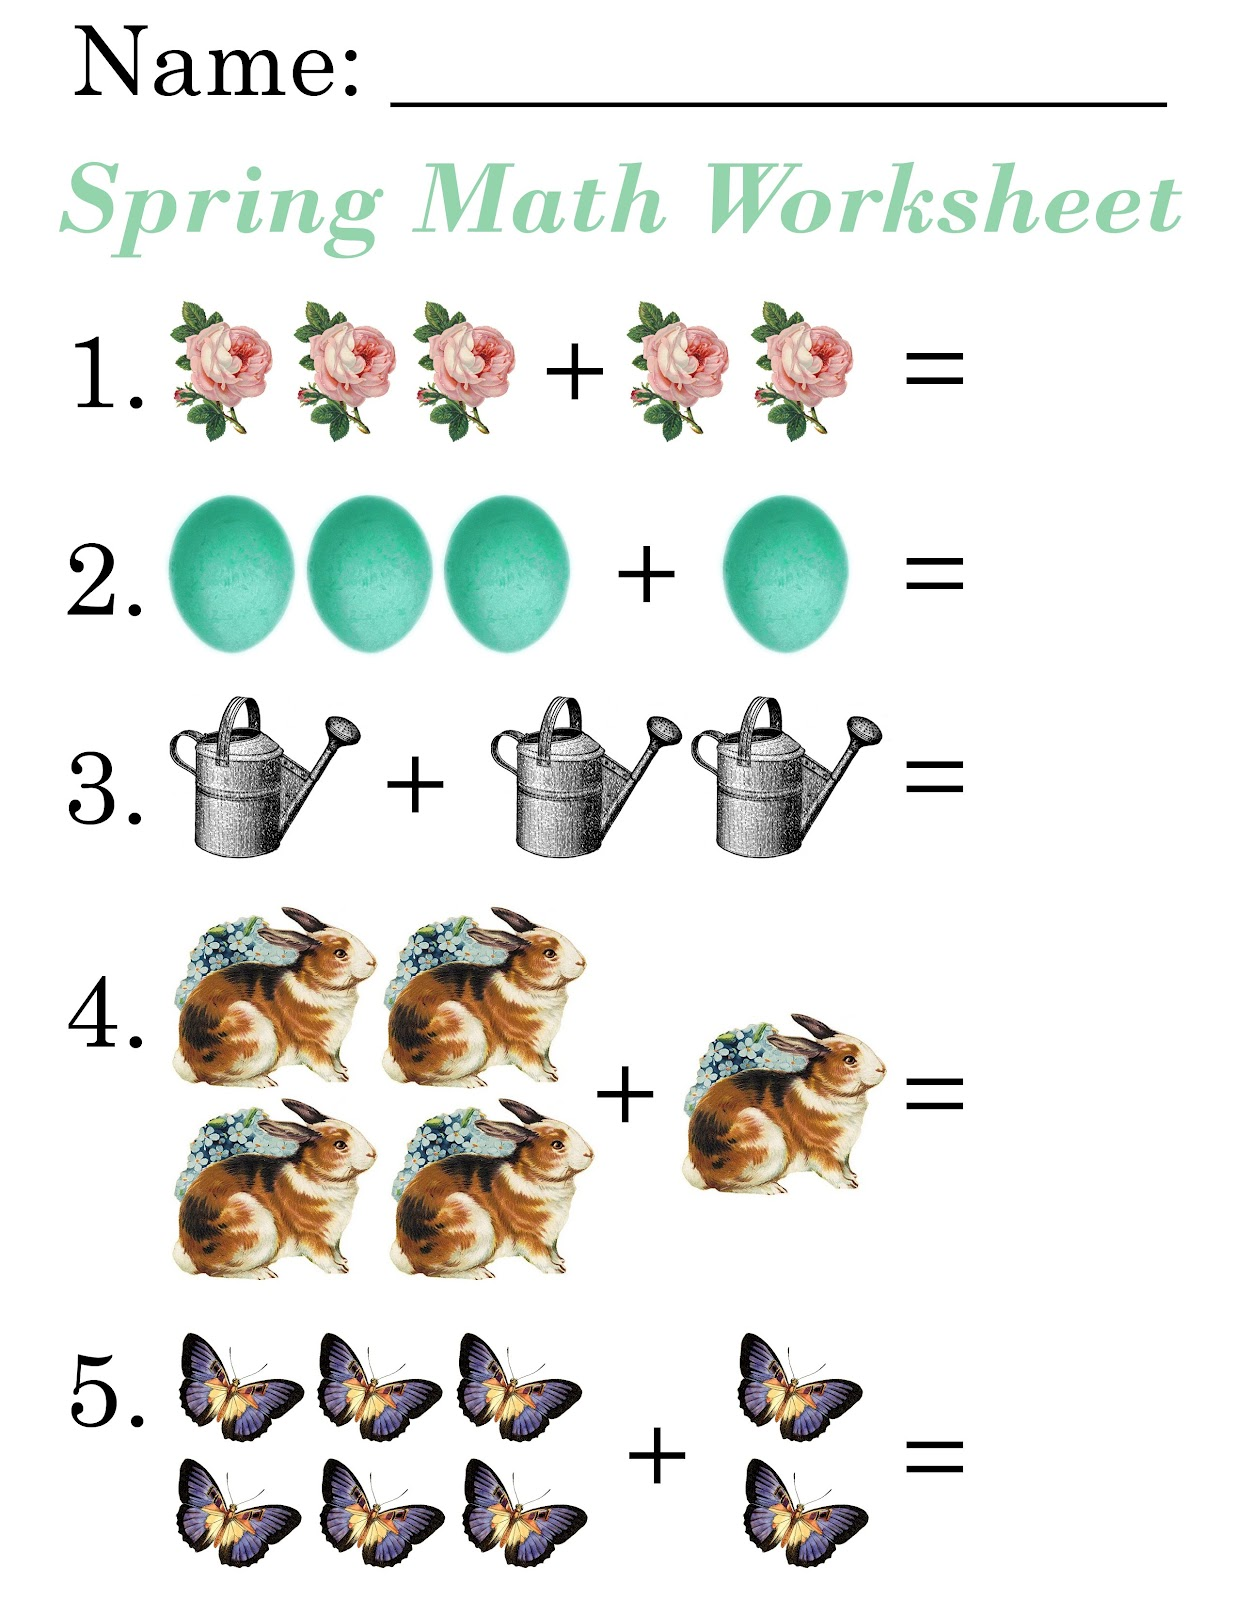 Maths Worksheets For 15 Year Olds – Math Worksheets for 3 Year Olds